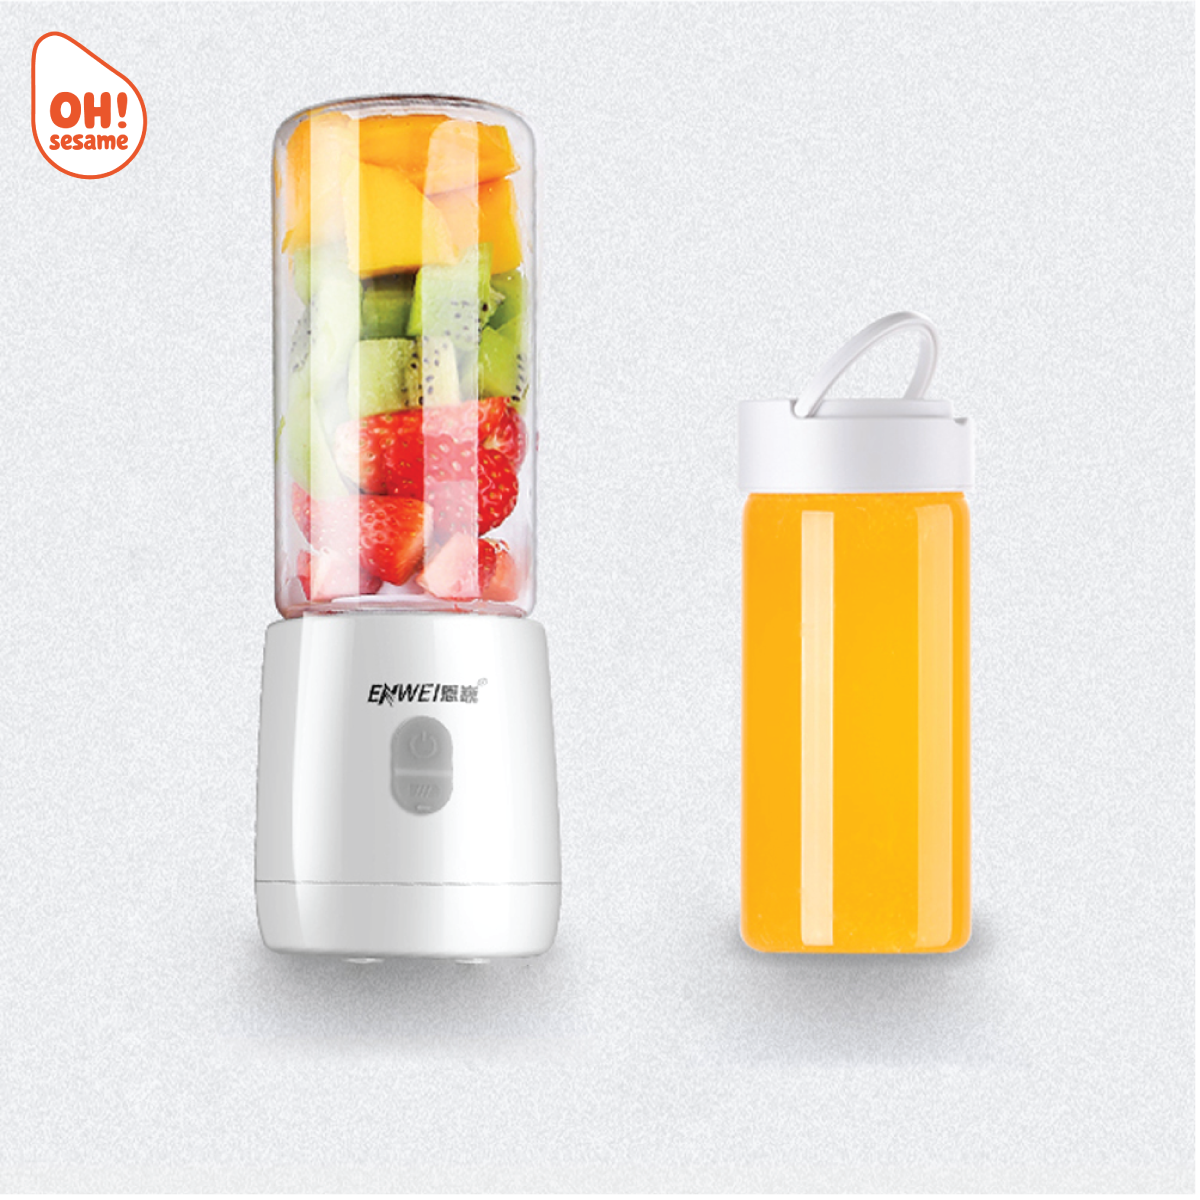 Rechargeable Cordless Portable Electric 6 Blades Glass Fruit Juice Blender 400ml